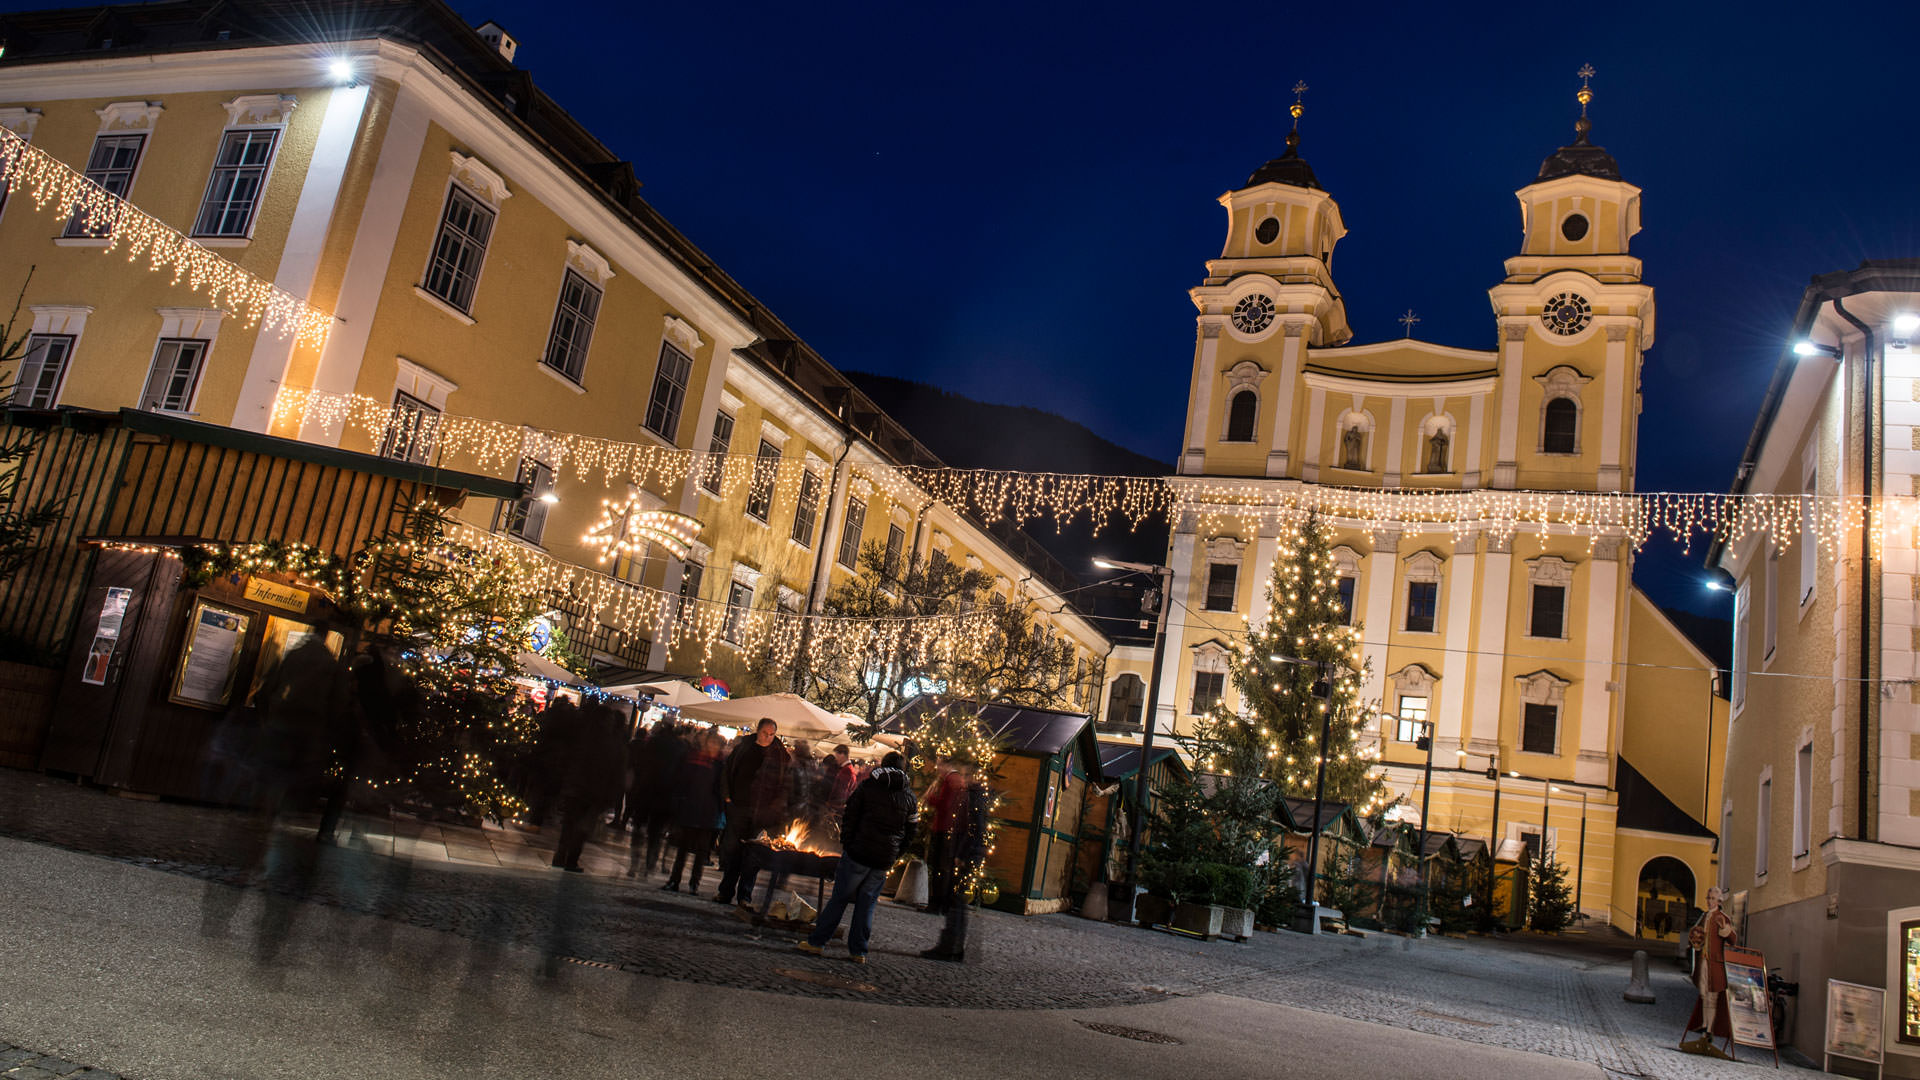 Advent am Mondsee